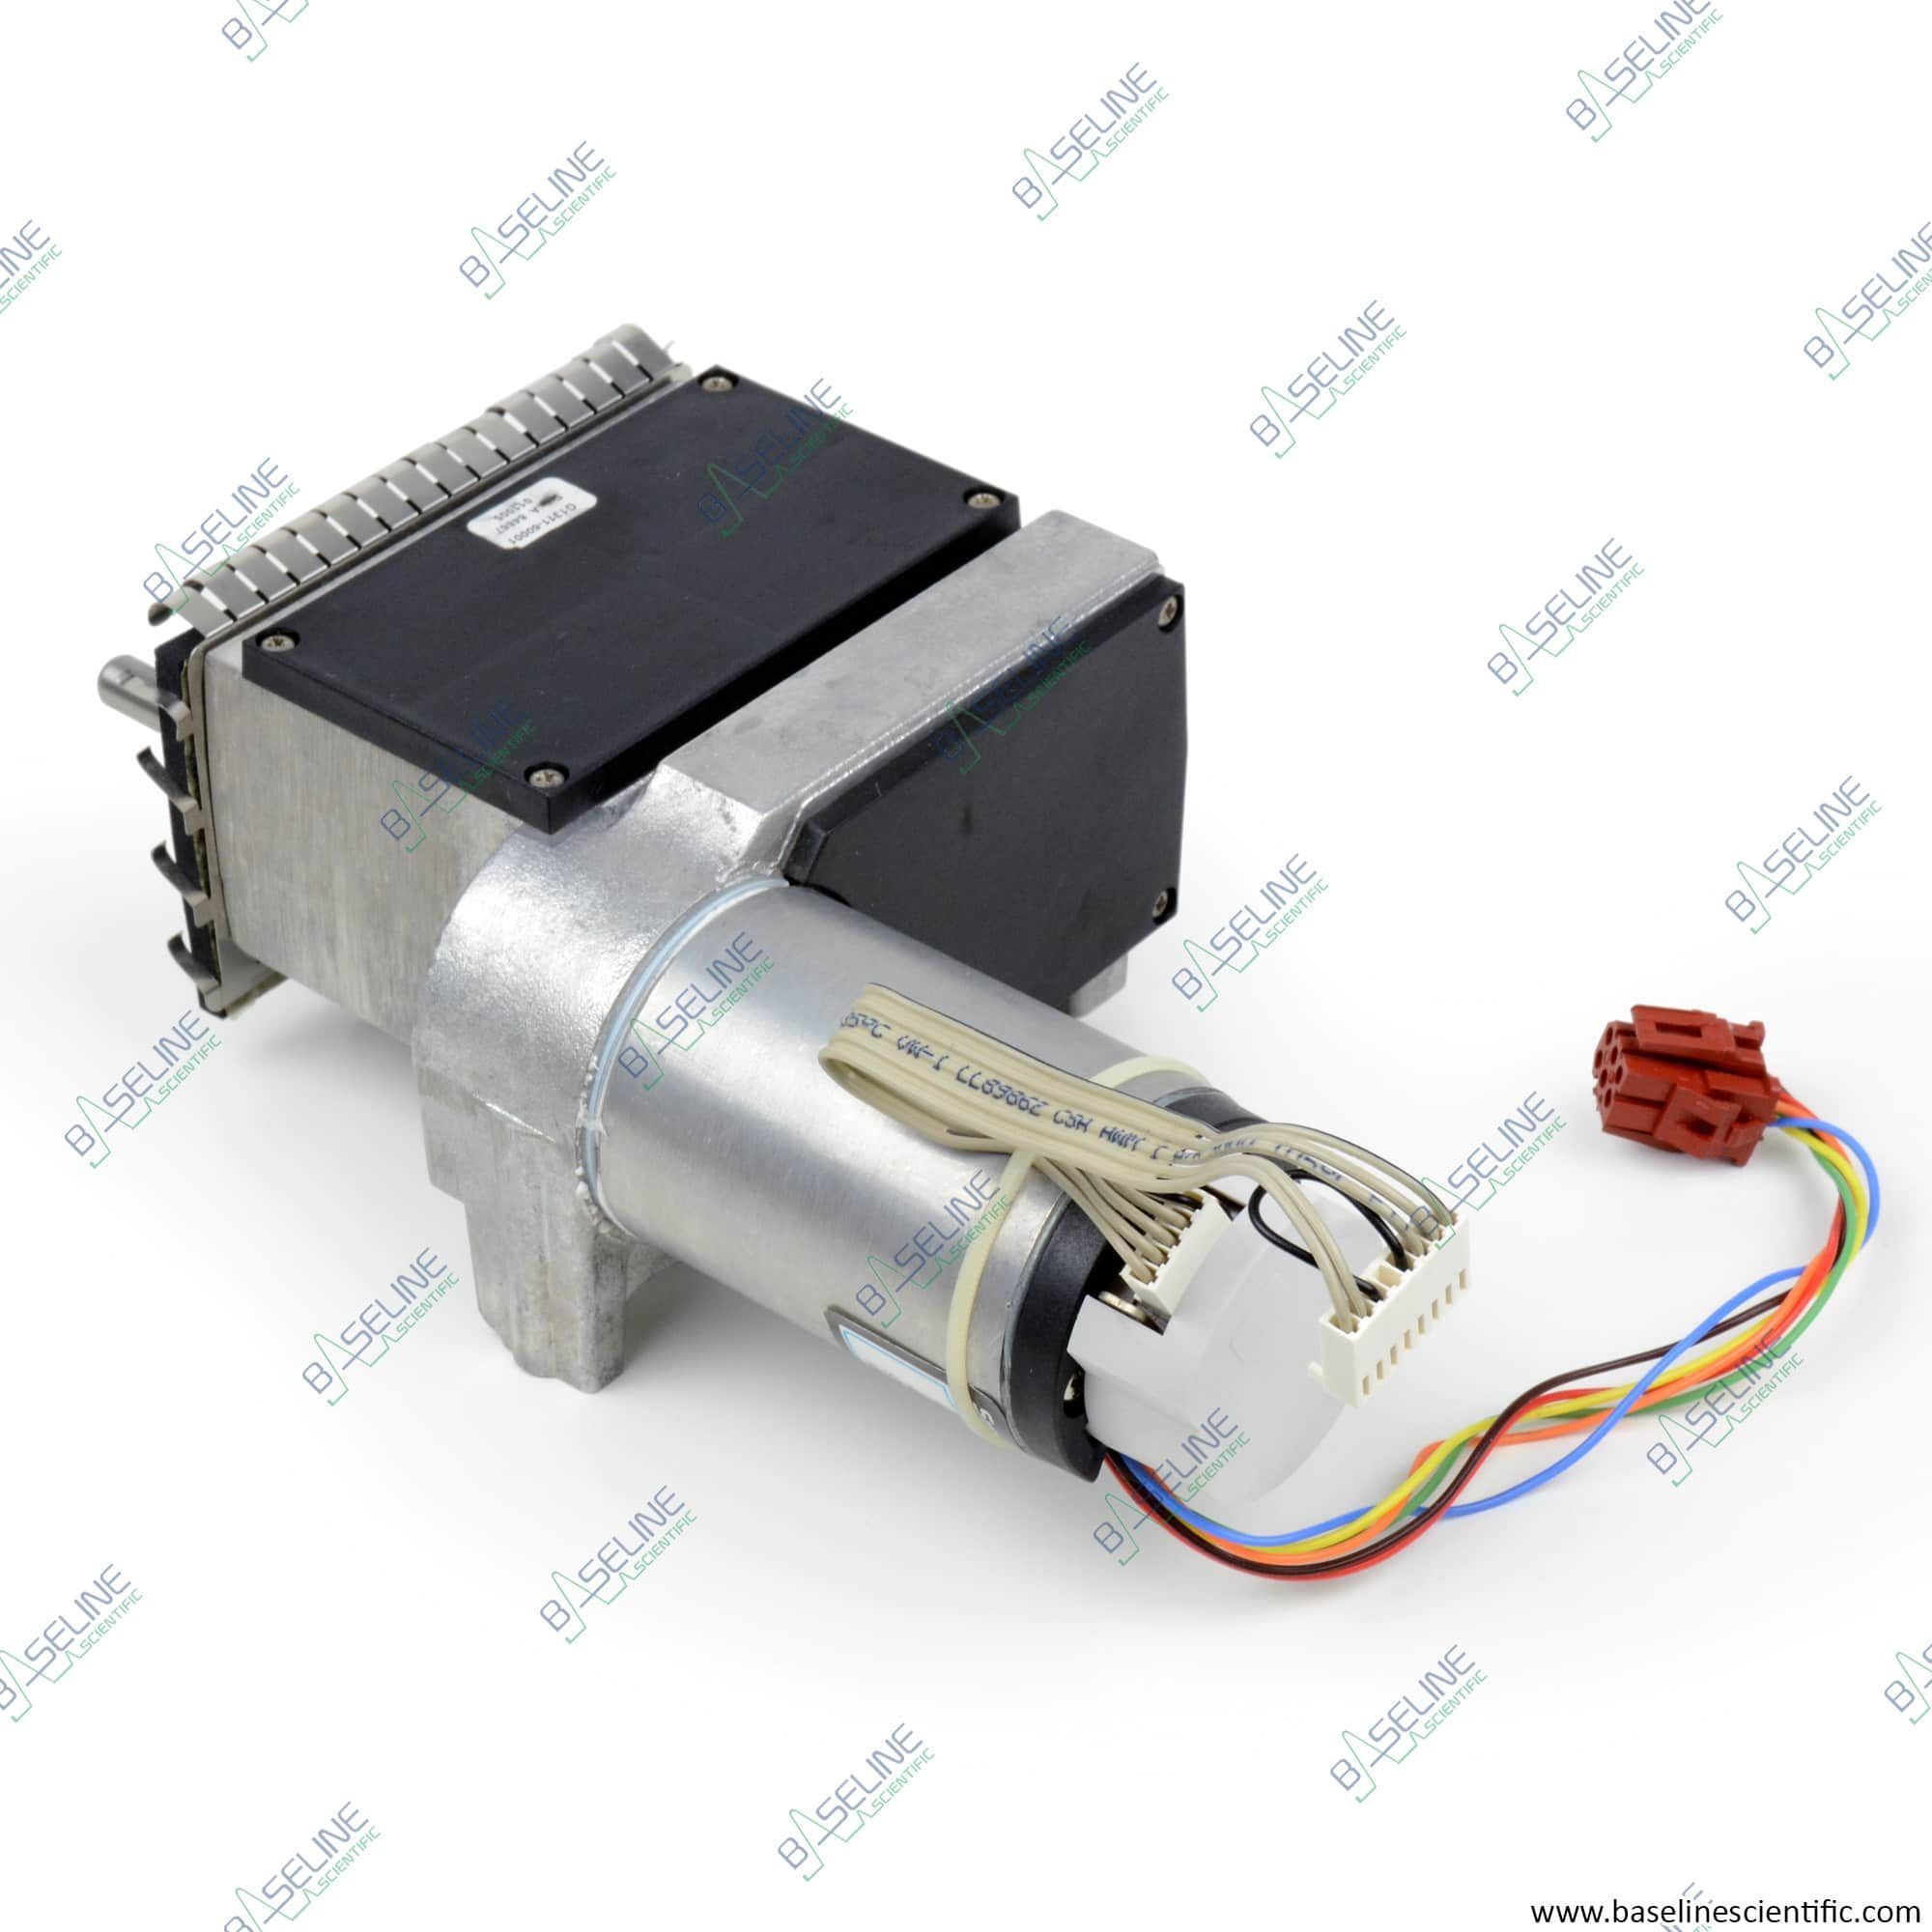 Refurbished Agilent HP 1100 1200 G1311-60001 Pump Drive with ONE YEAR WARRANTY